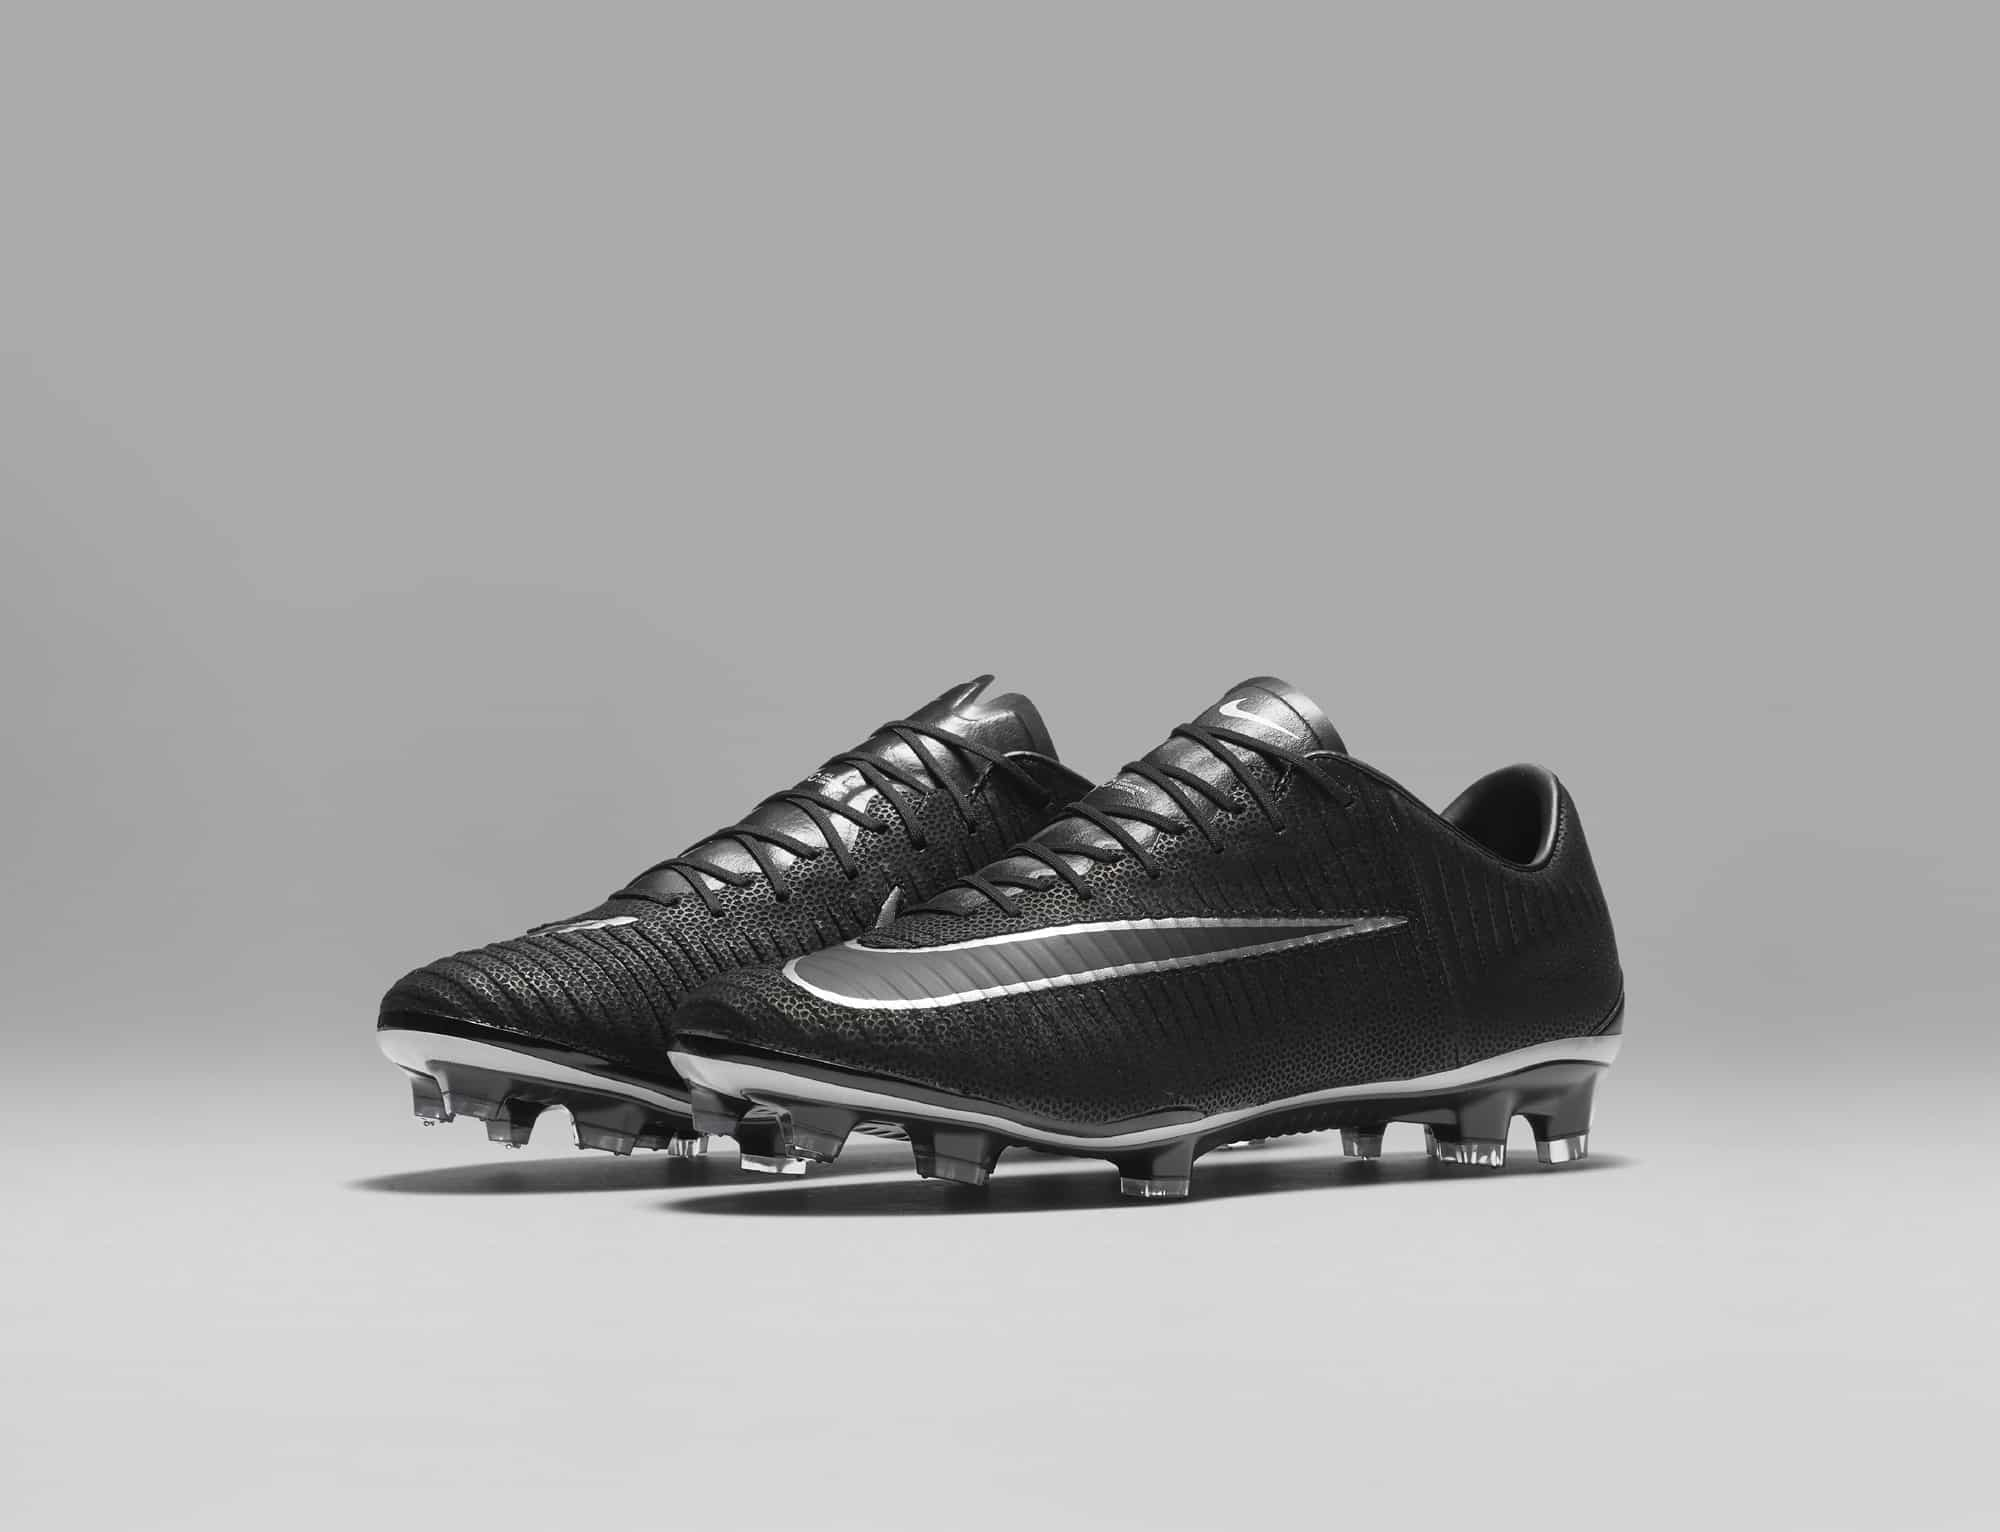 chaussures-football-nike-mercurial-vapor-xi-tech-craft-img2